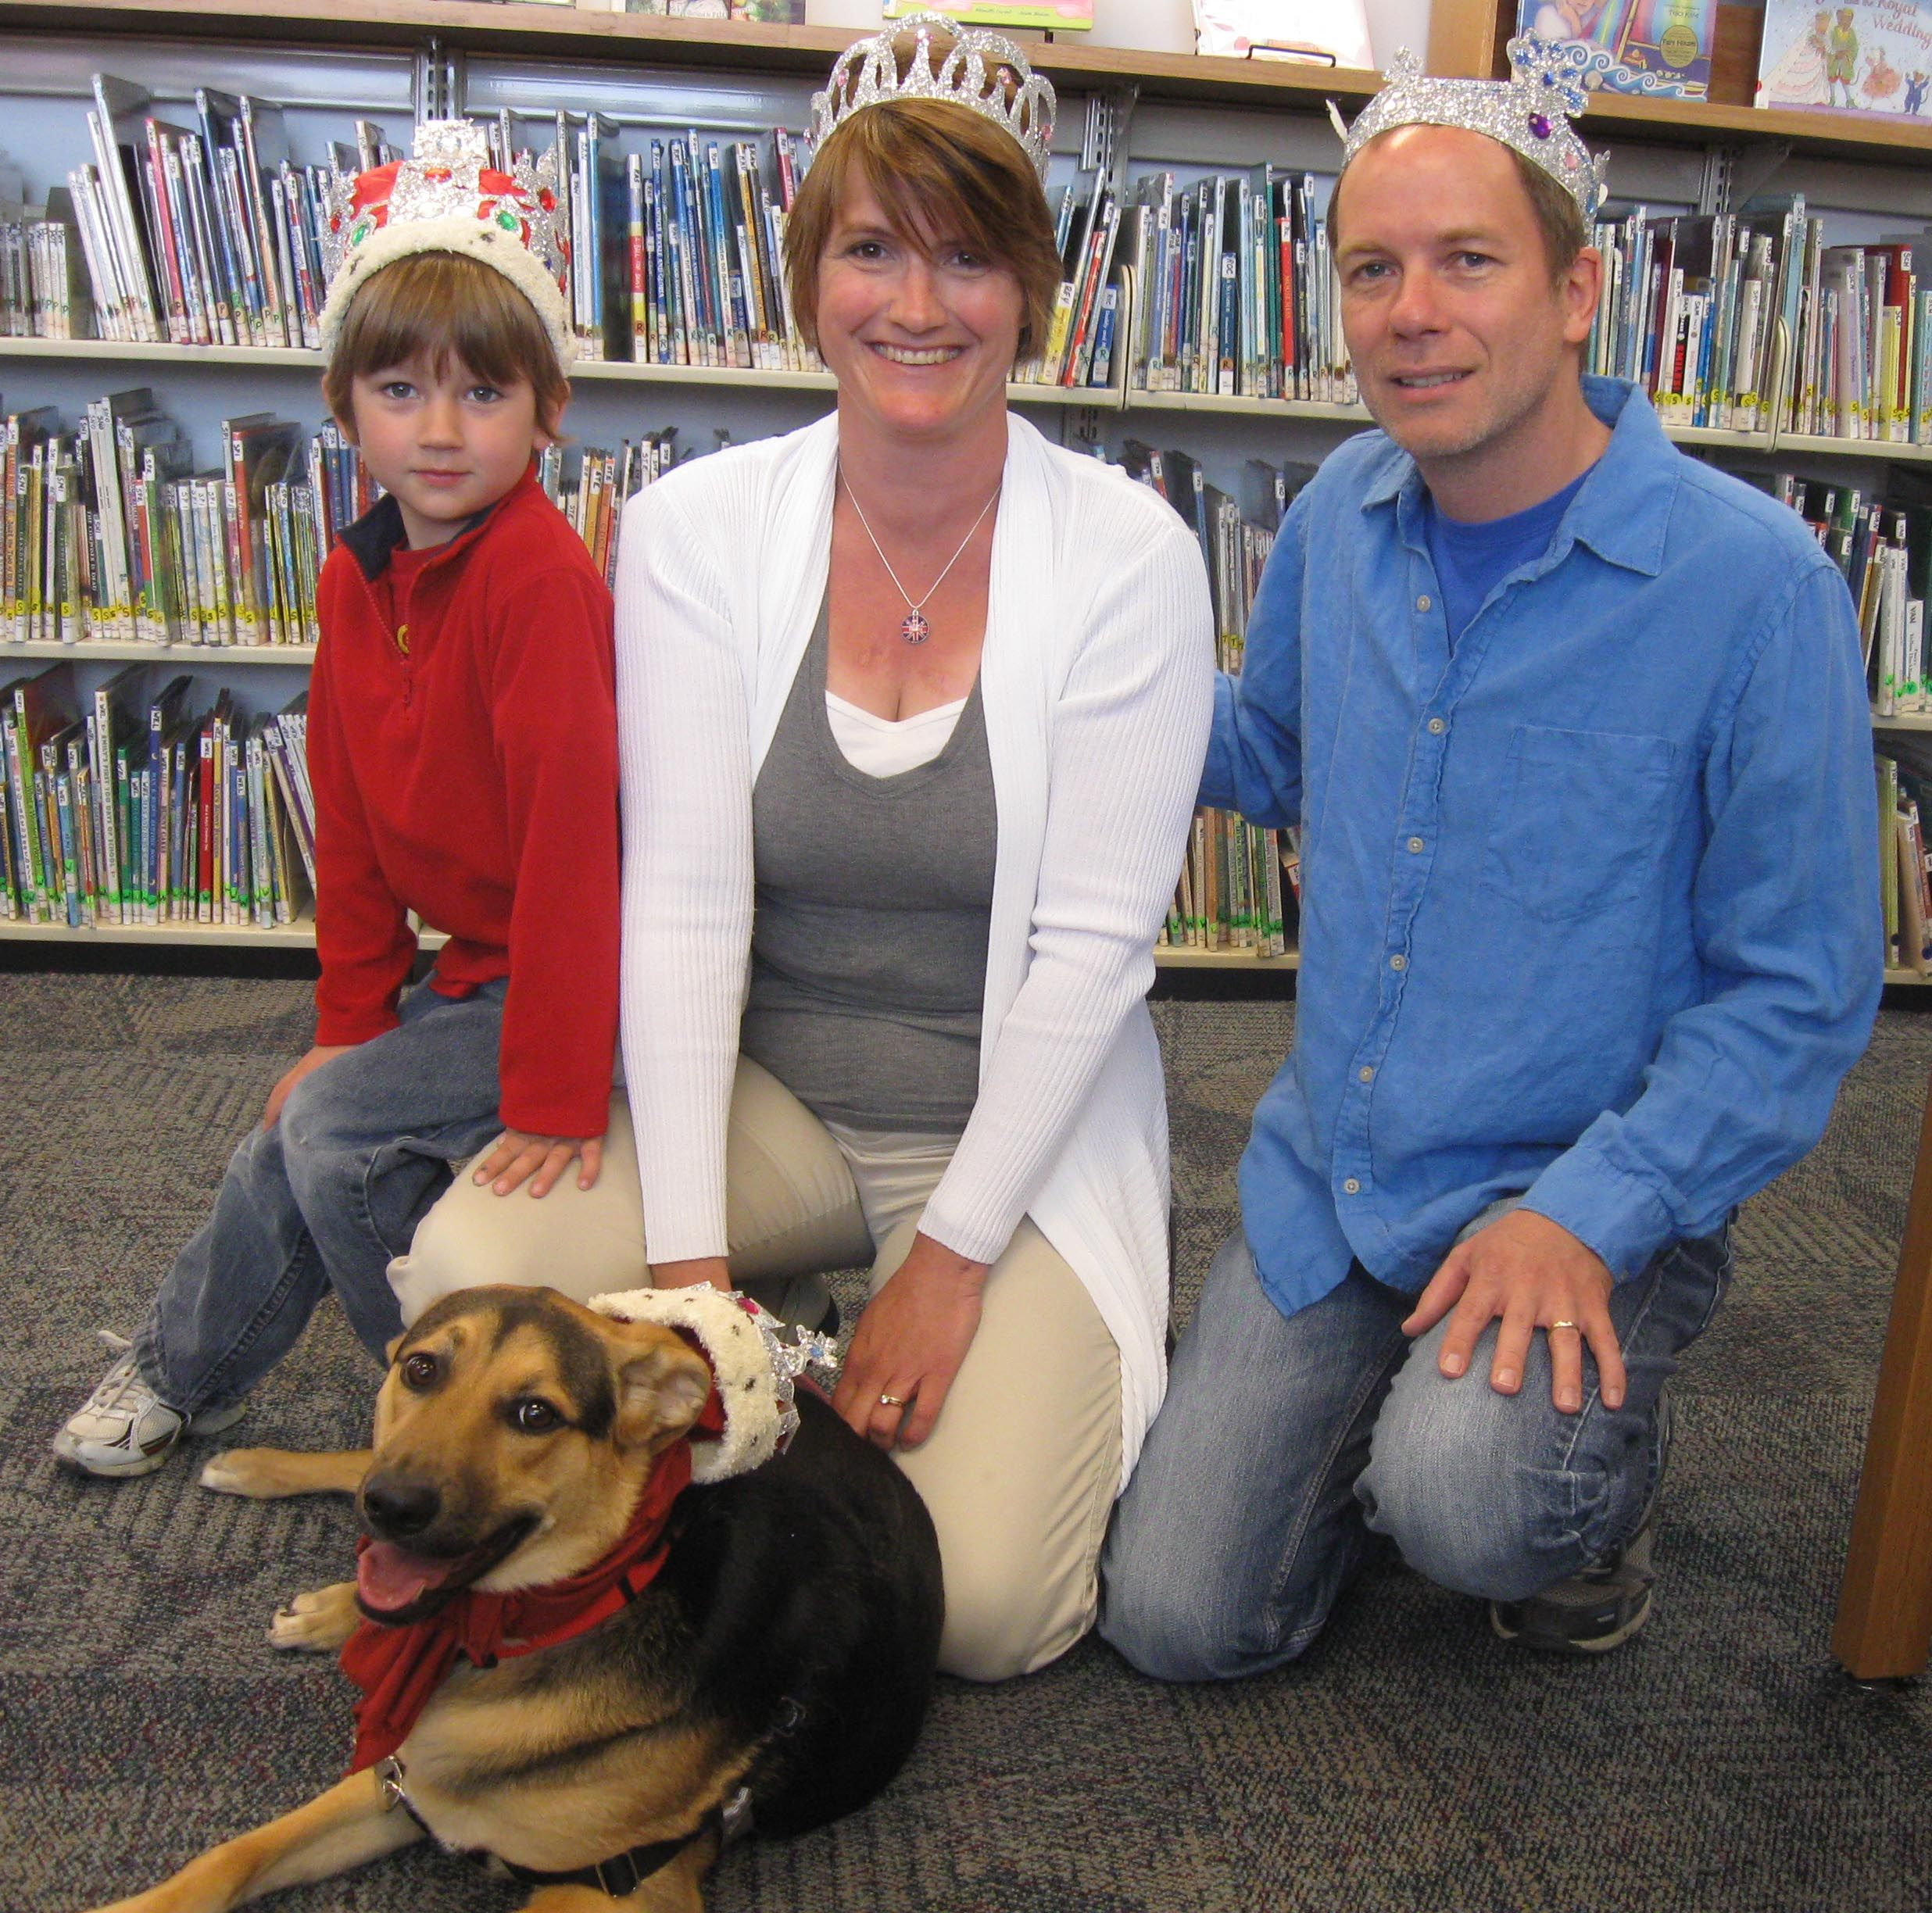 The Knudson Family (Craig, age 5, and his parents Ilona and Russell) and Kipper, Keeper of the Peace in the Canine Kingdom, celebrated Queen Elizabeth's birthday at Royal Dog Day at Atlantic County Library System/Brigantine on Saturday, April 21.